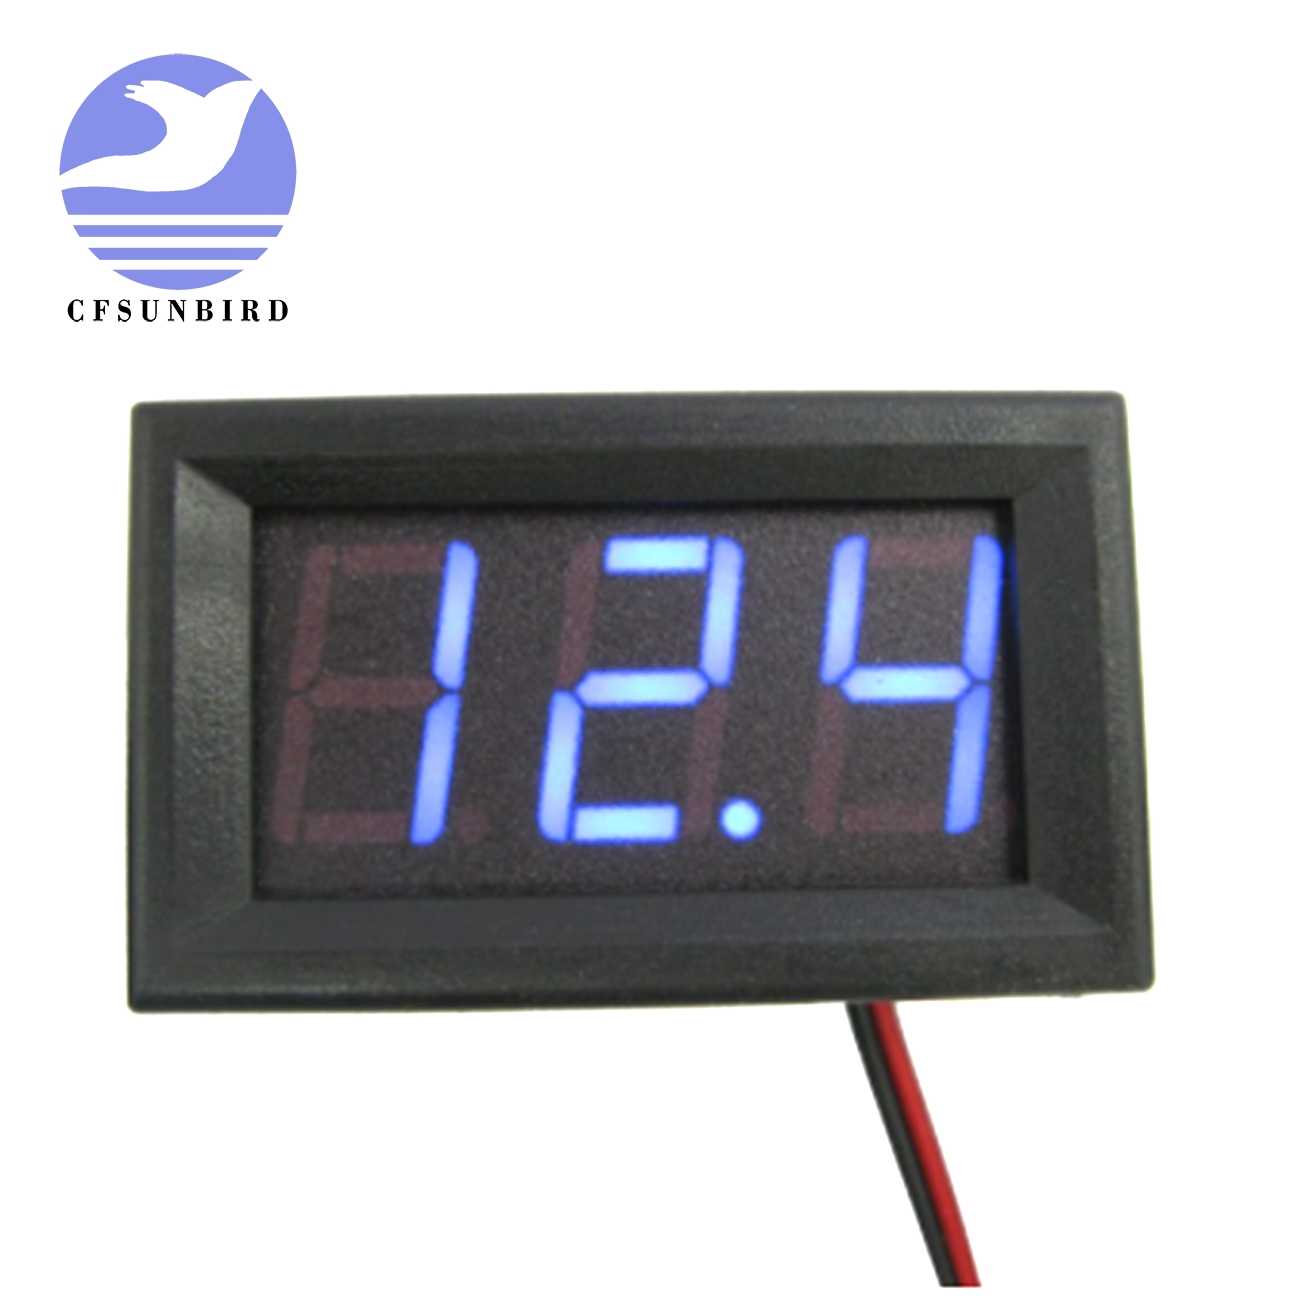 CFsunbird Mini for DC 4.5V-30.0V Voltmeter High Quality 0.56 inch LED Digital Voltmeter suitable for different occasions(China)